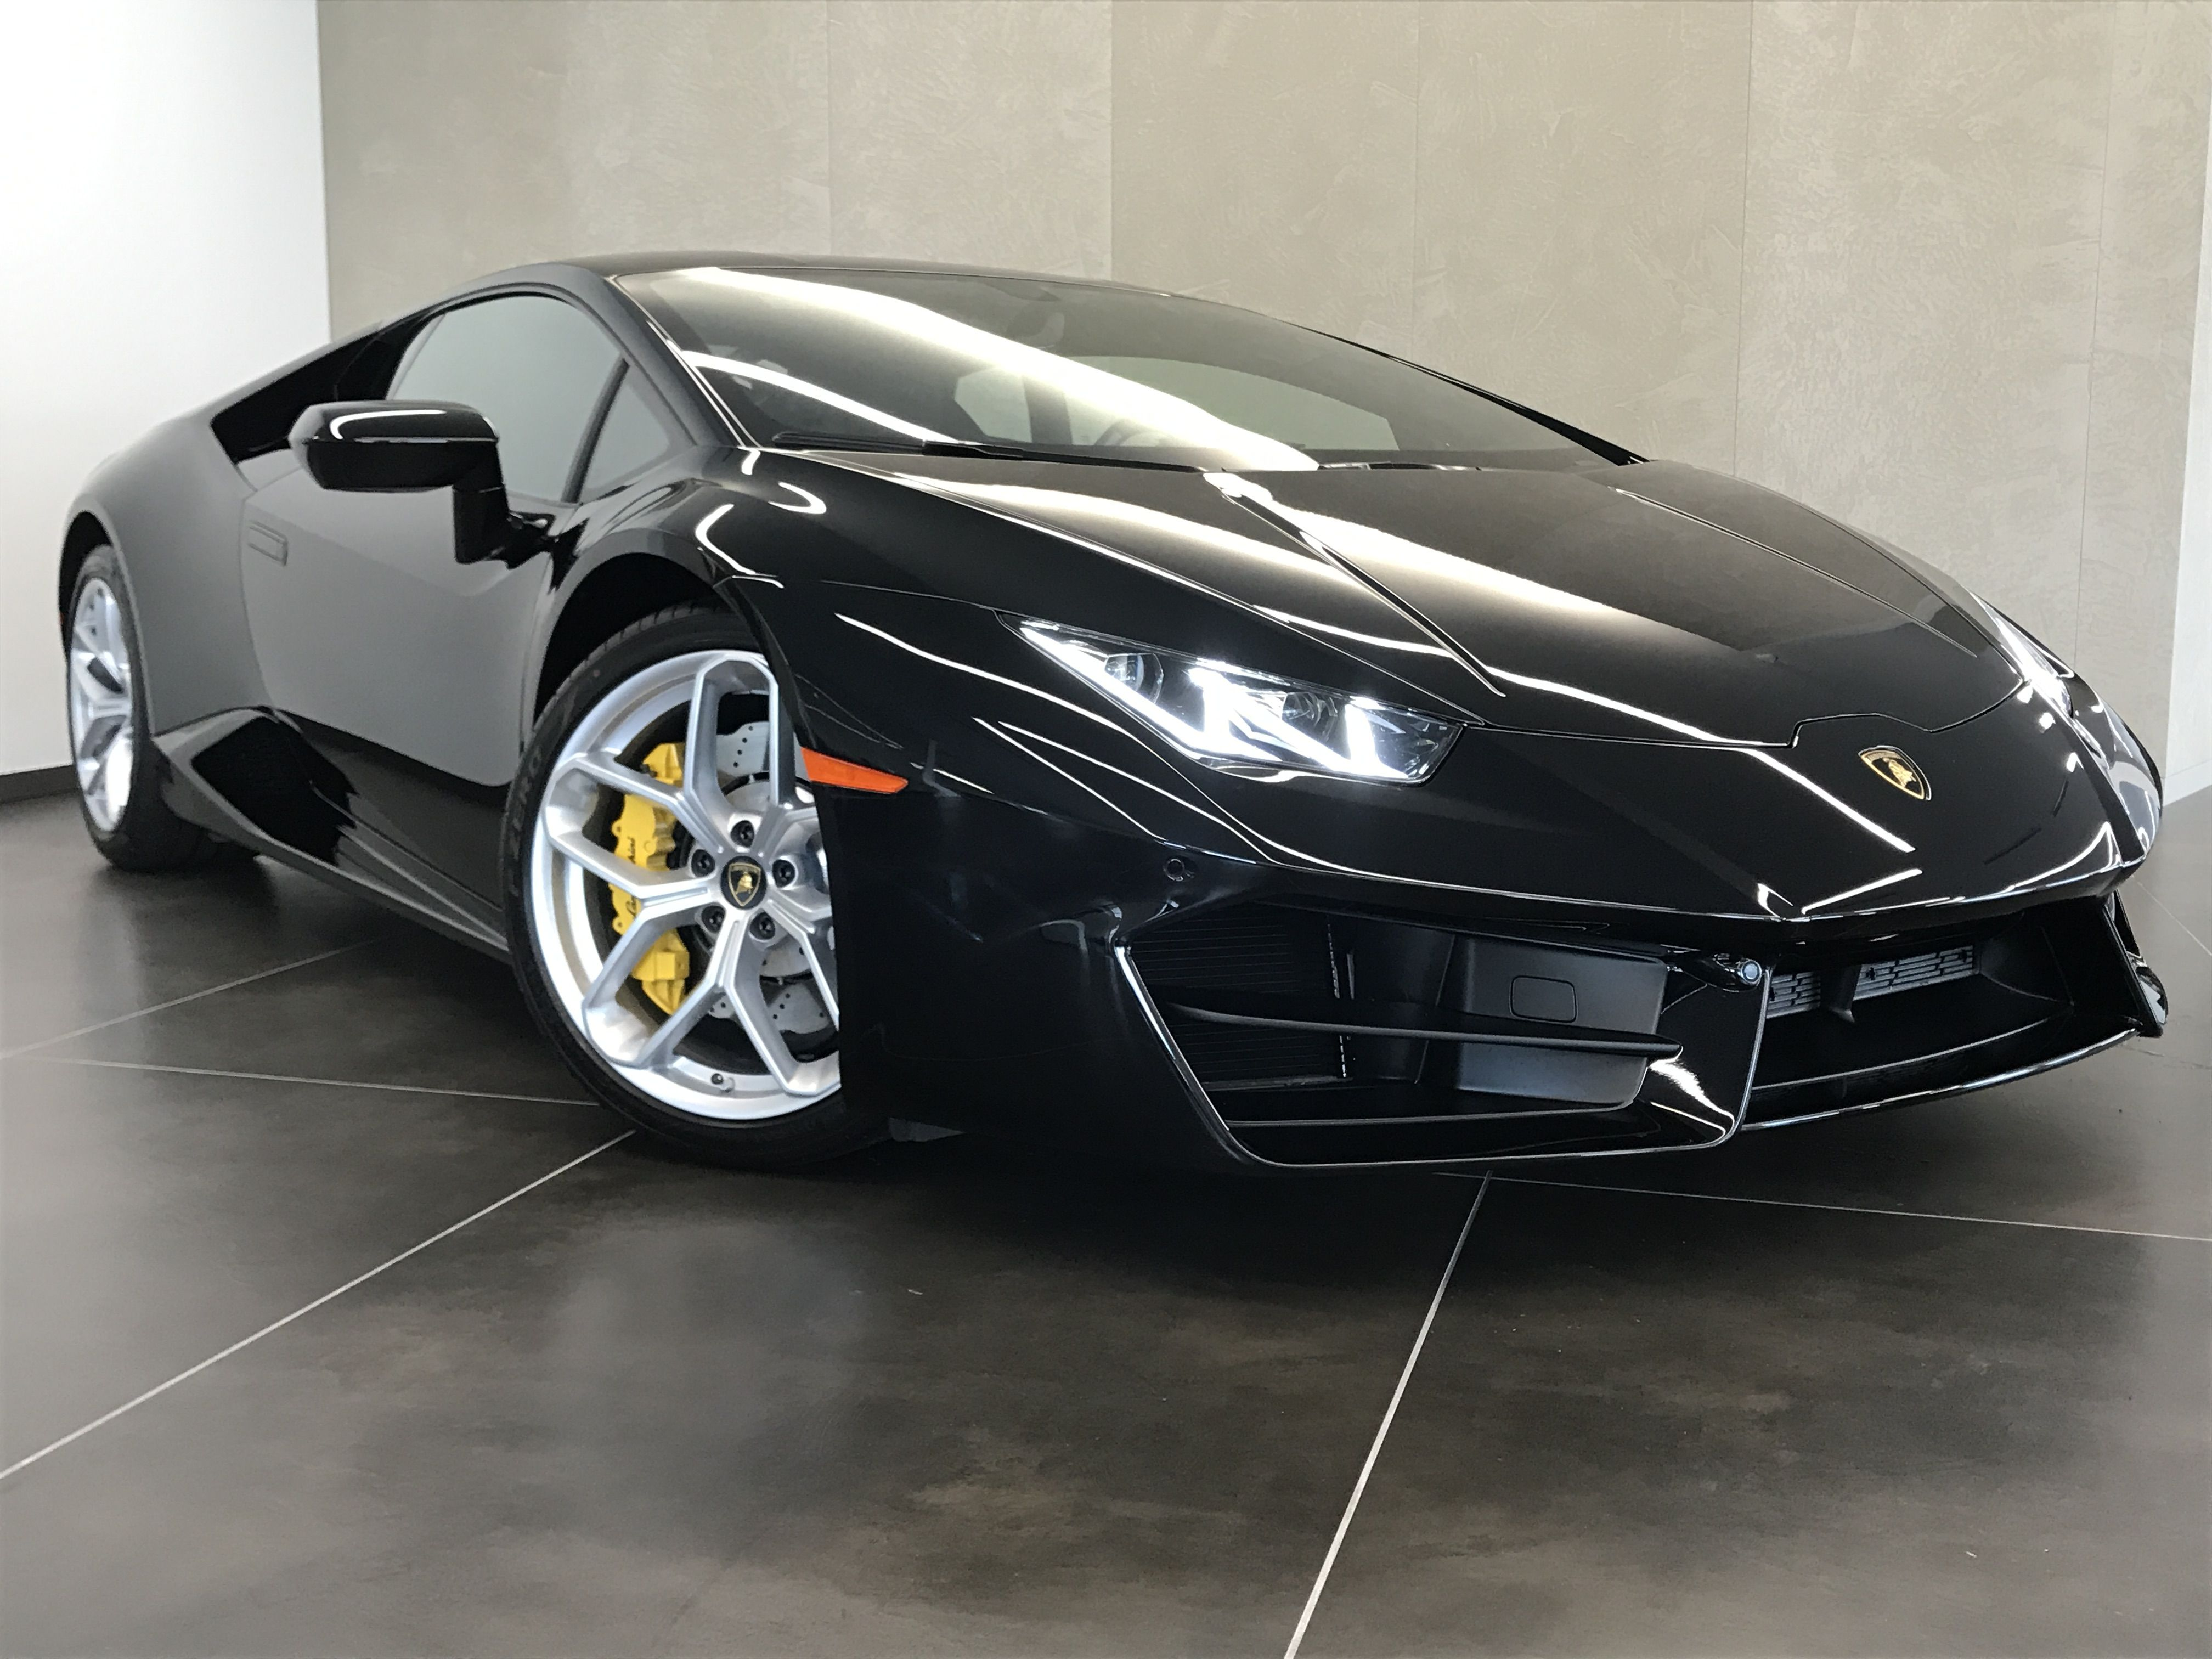 2018 Lamborghini Huracan Lp580 2 Coupe This Lamborghini Huracan Is The Vehicle Others Dream To Own Don Lamborghini Lamborghini Dealership Lamborghini Huracan